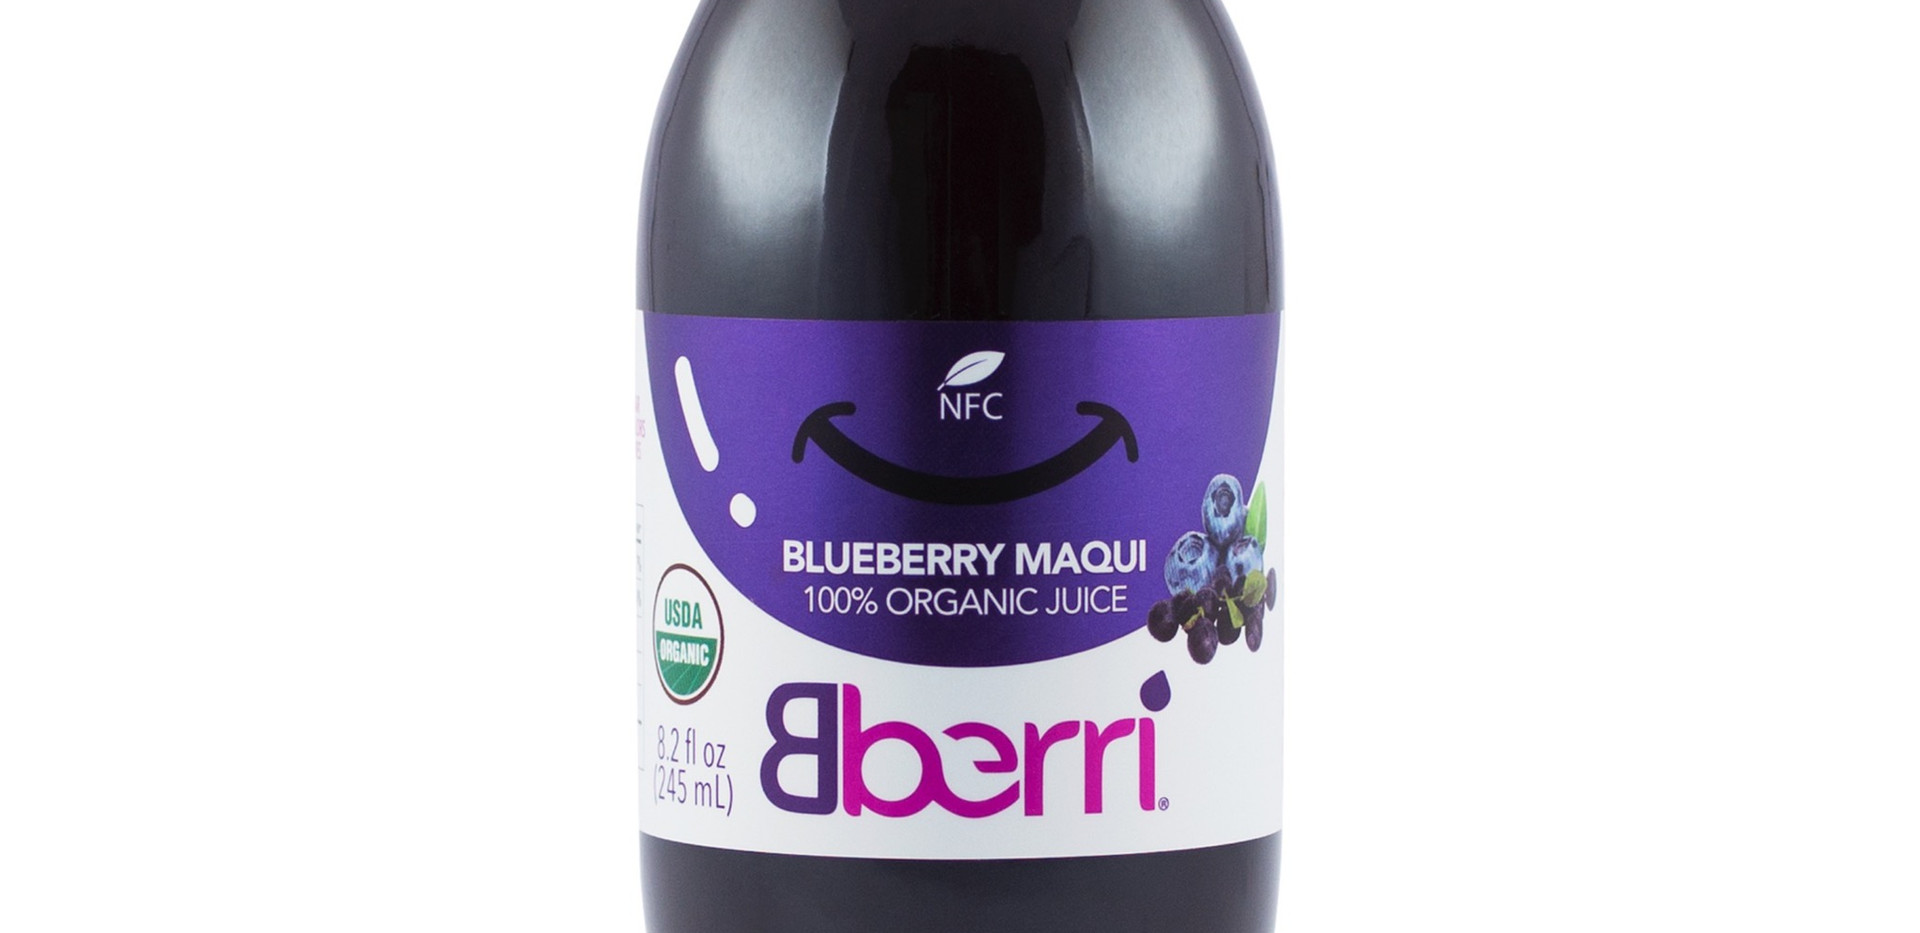 Blueberry Maqui Juice